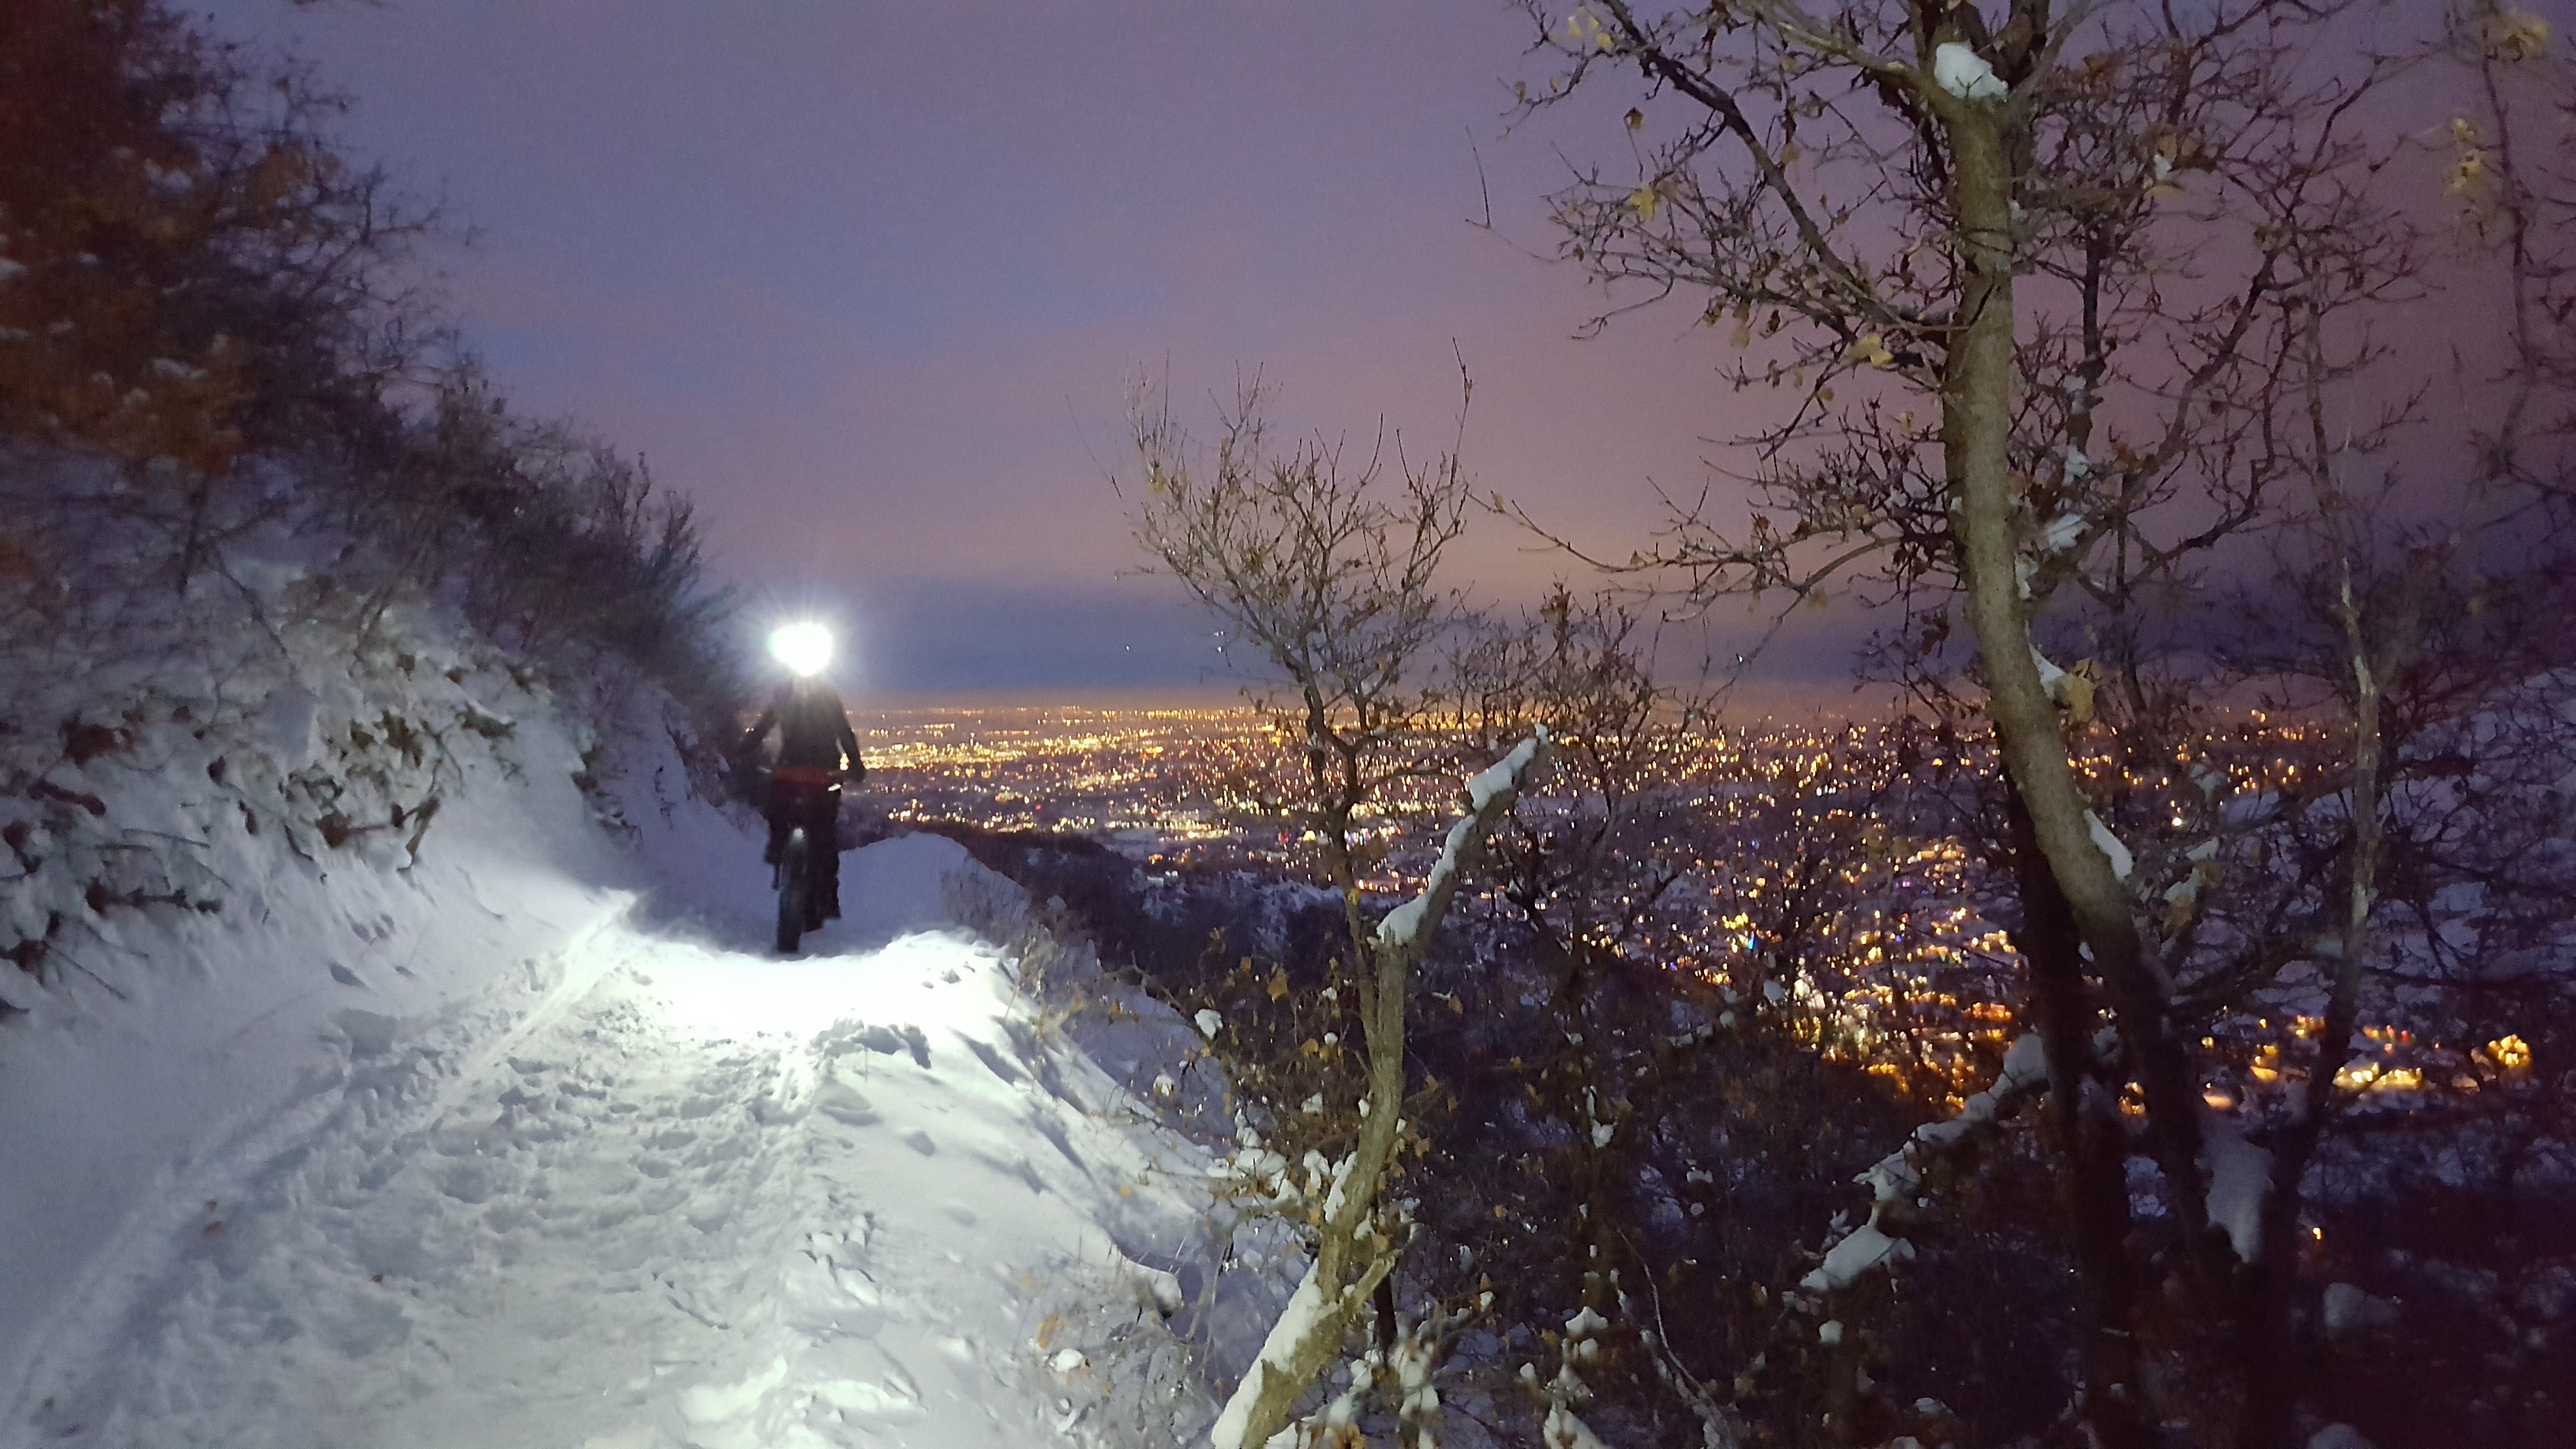 Riding a fat bike in the snow at night